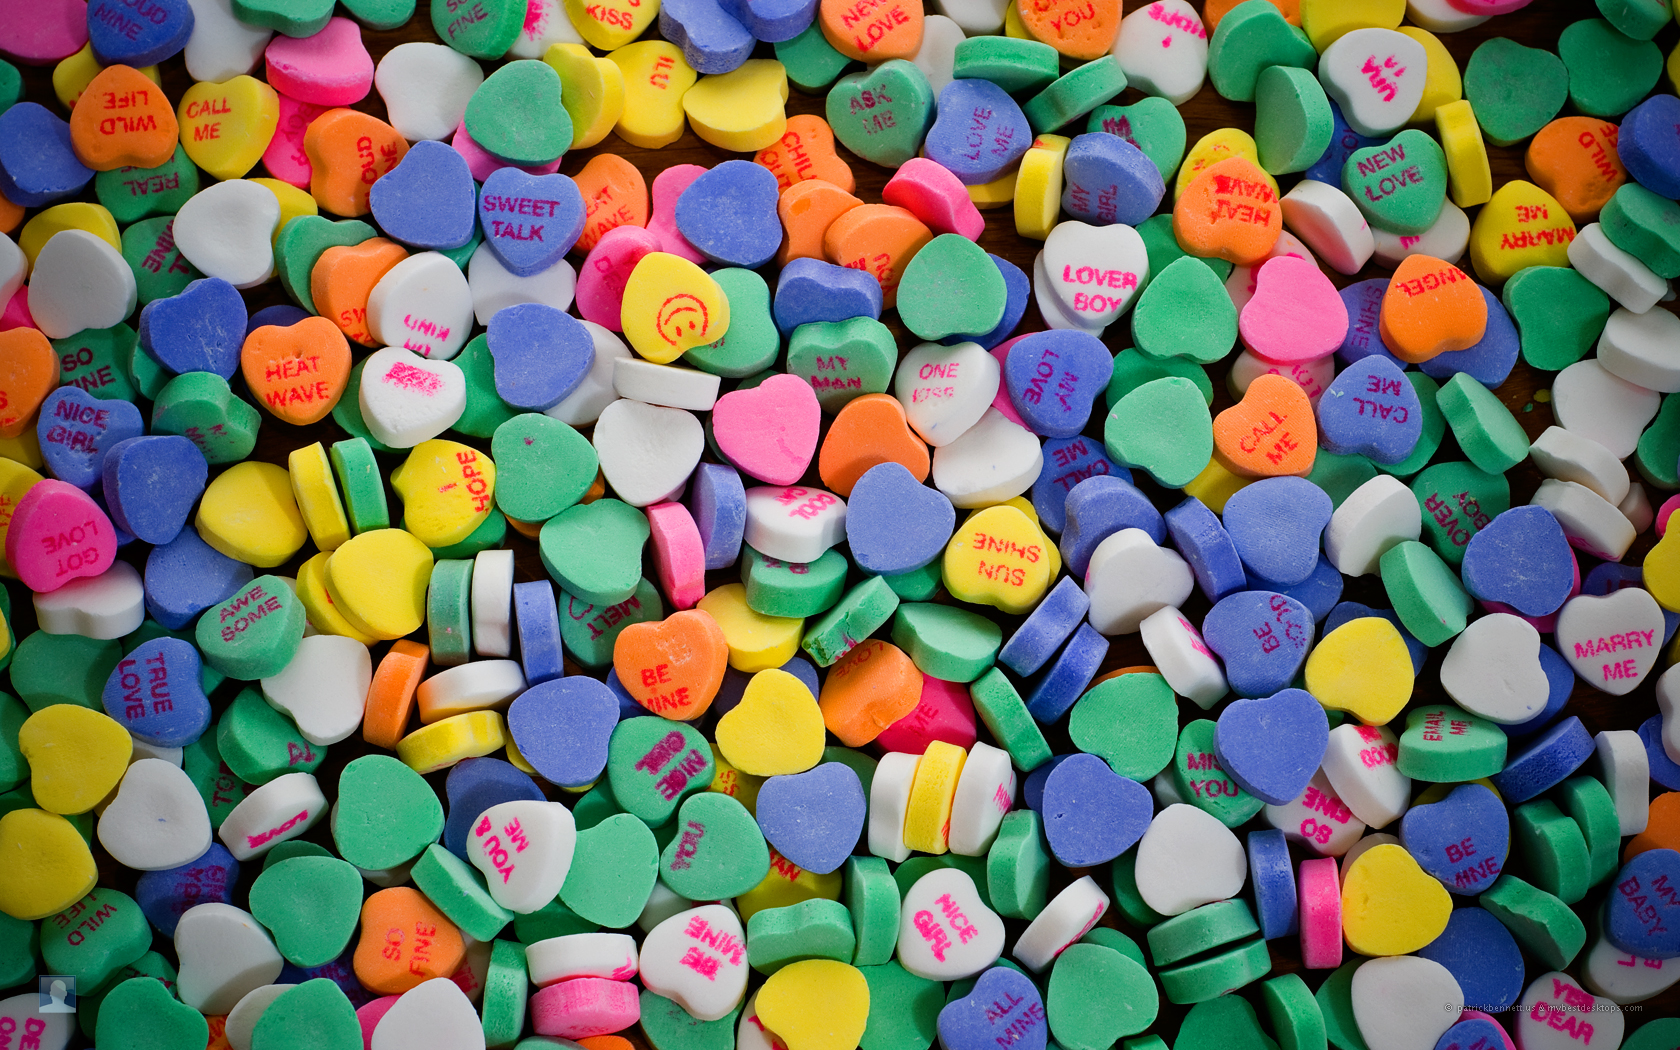 Candys Valentines Day Wallpaper   Background Wallpaper Gallery